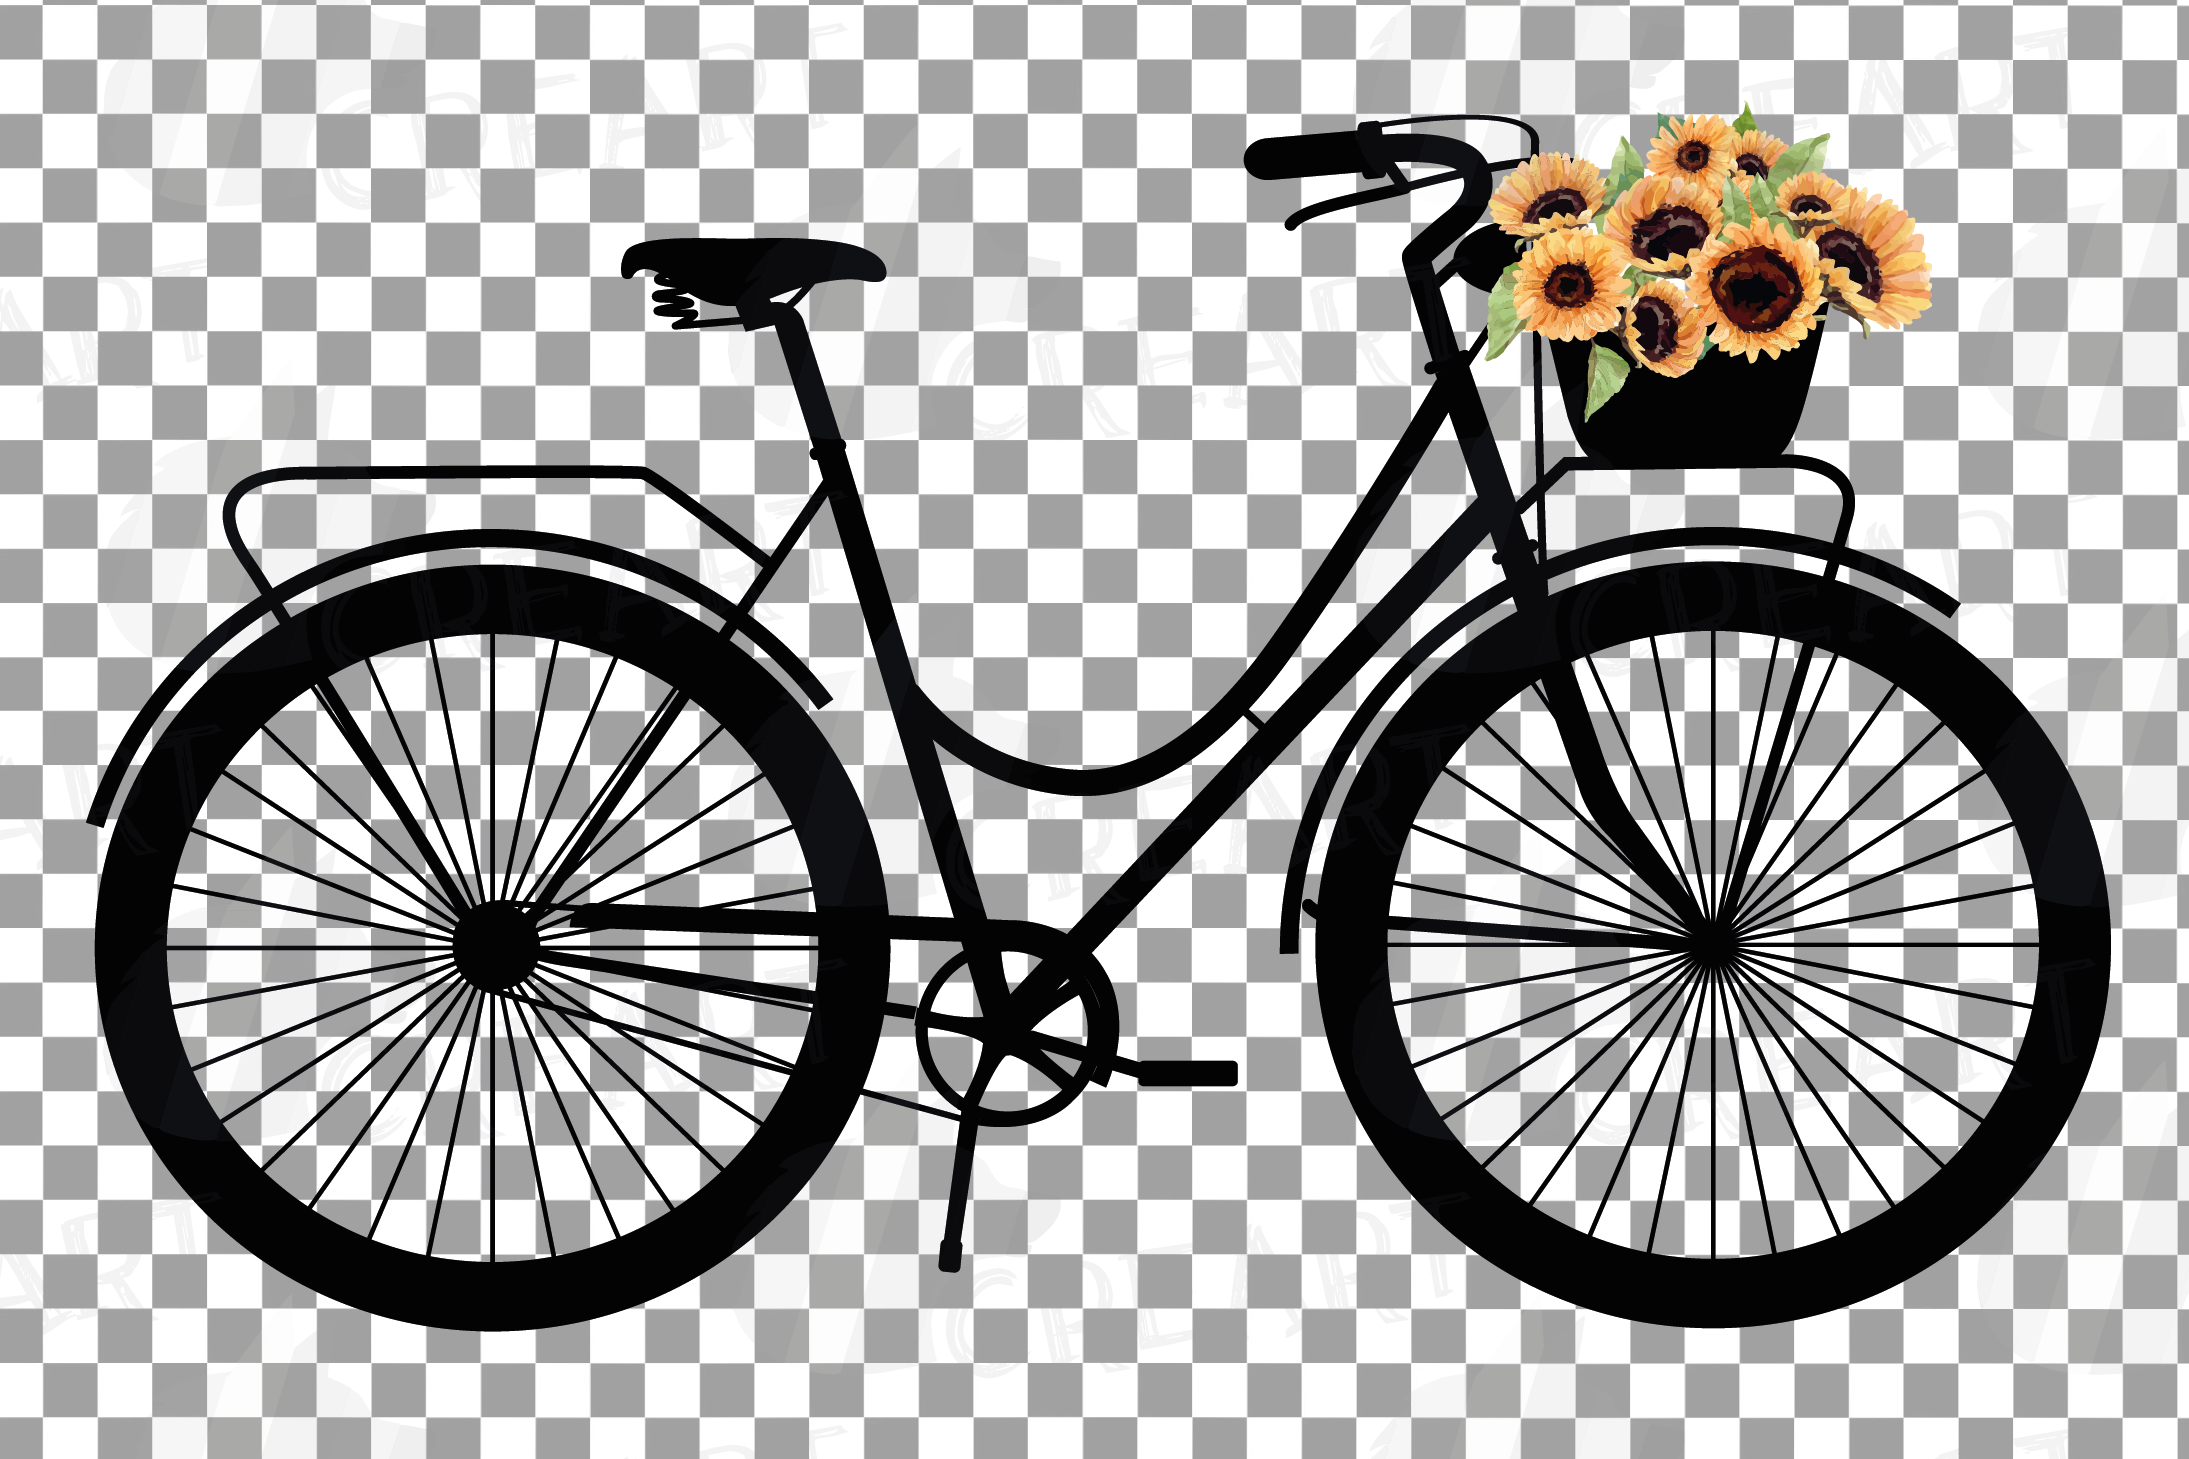 Sunflower bouquets bicycles clip art. Floral bikes decor png example image 4